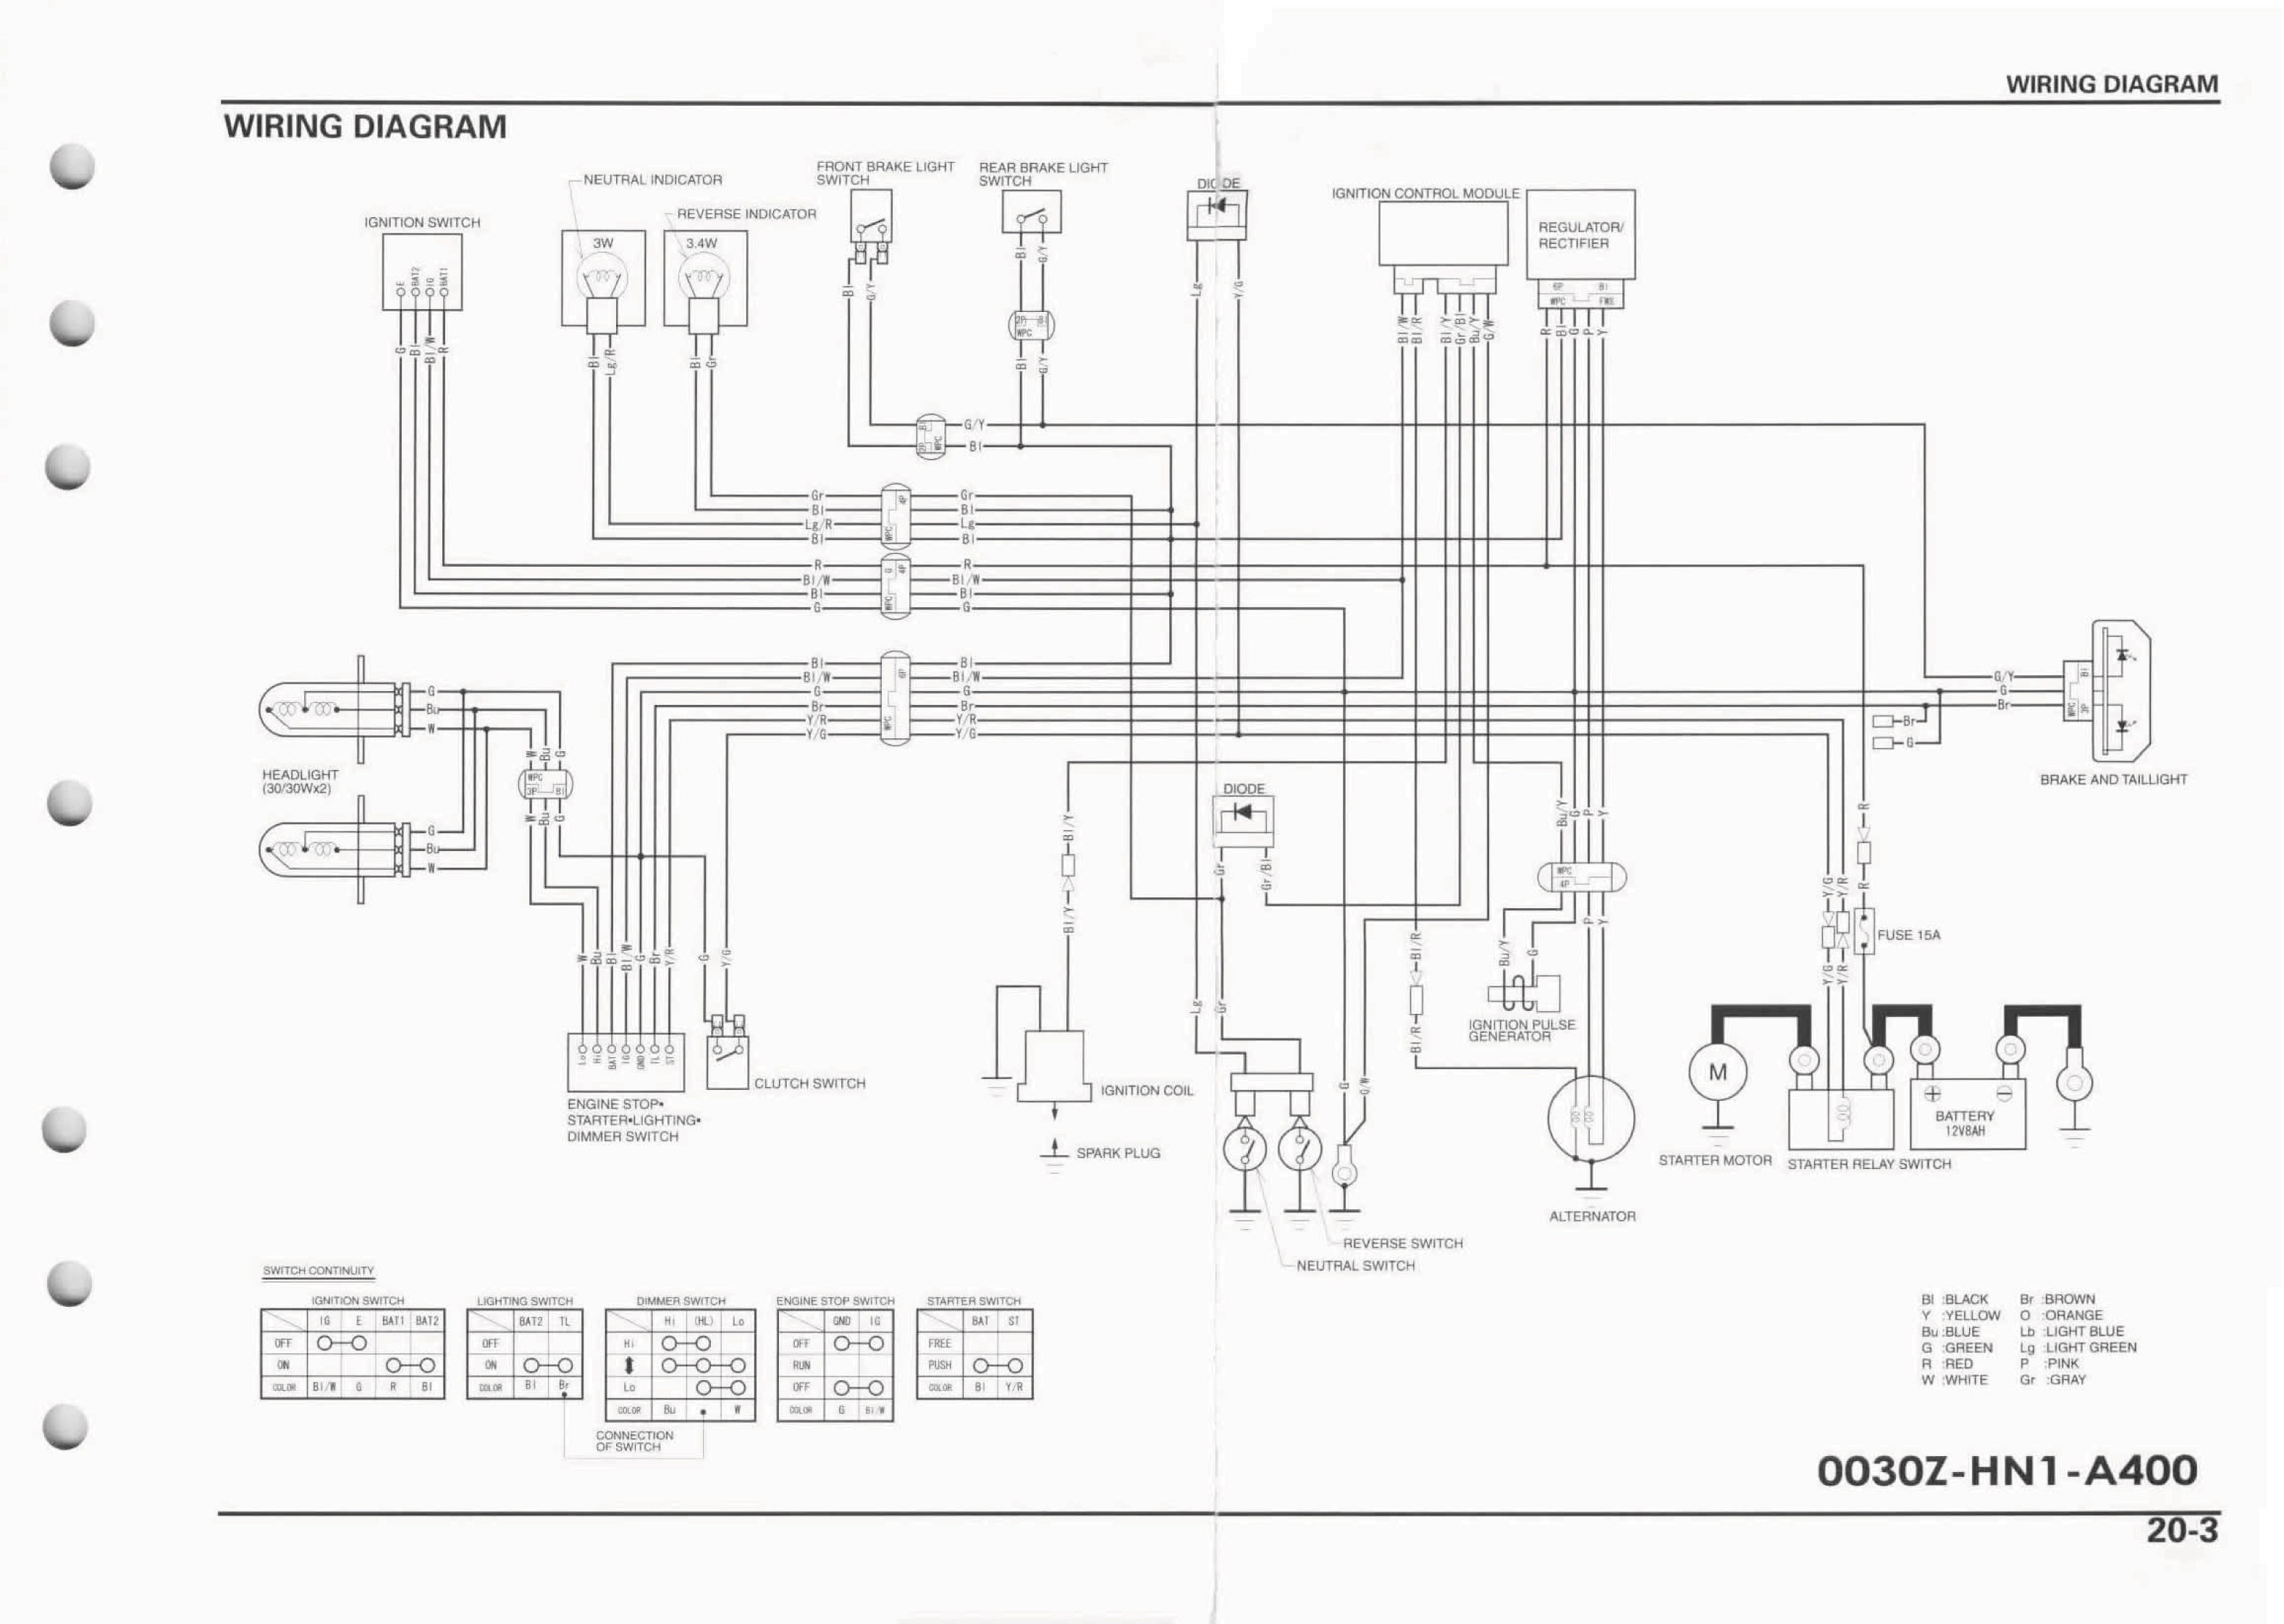 ✦DIAGRAM BASED✦ Wire Diagram On A Honda Trx 90 COMPLETED DIAGRAM BASE Trx  90 - DAMIEN.VRIELYNCK.KIDNEYDIAGRAM.PCINFORMI.ITDiagram Based Completed Edition - PcInformi